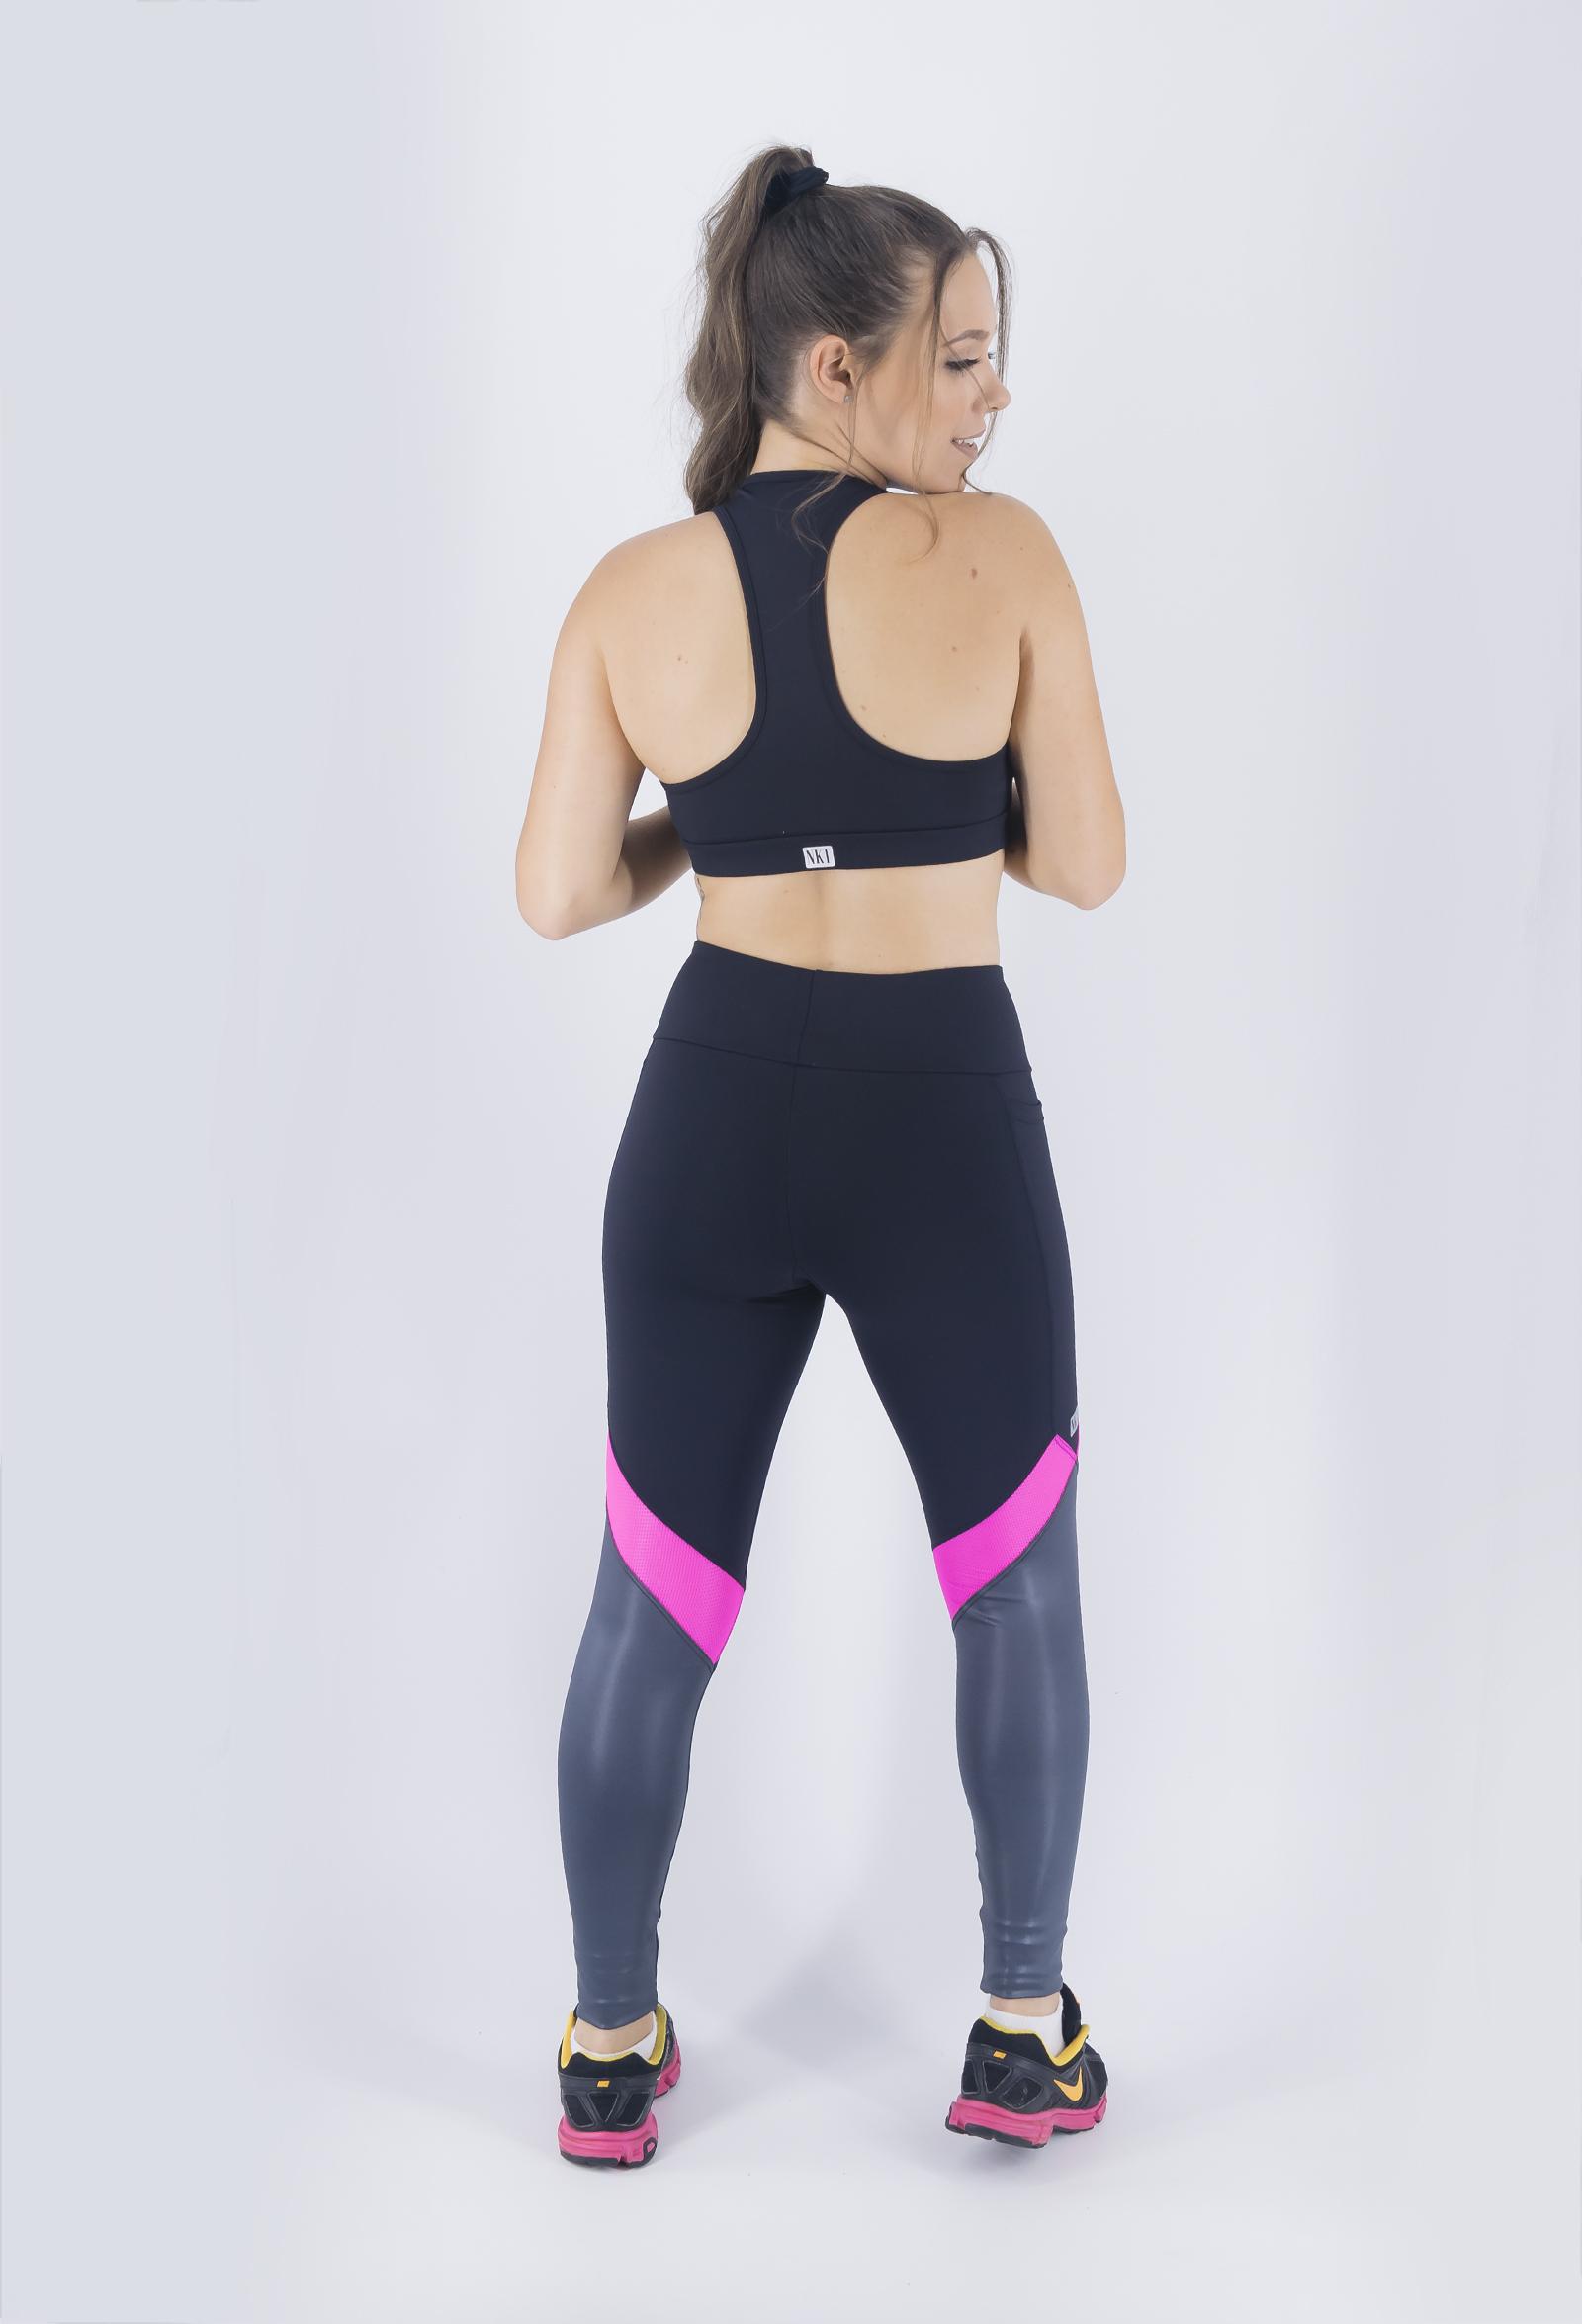 Legging Set Chumbo, Coleção Just For You - NKT Fitwear Moda Fitness